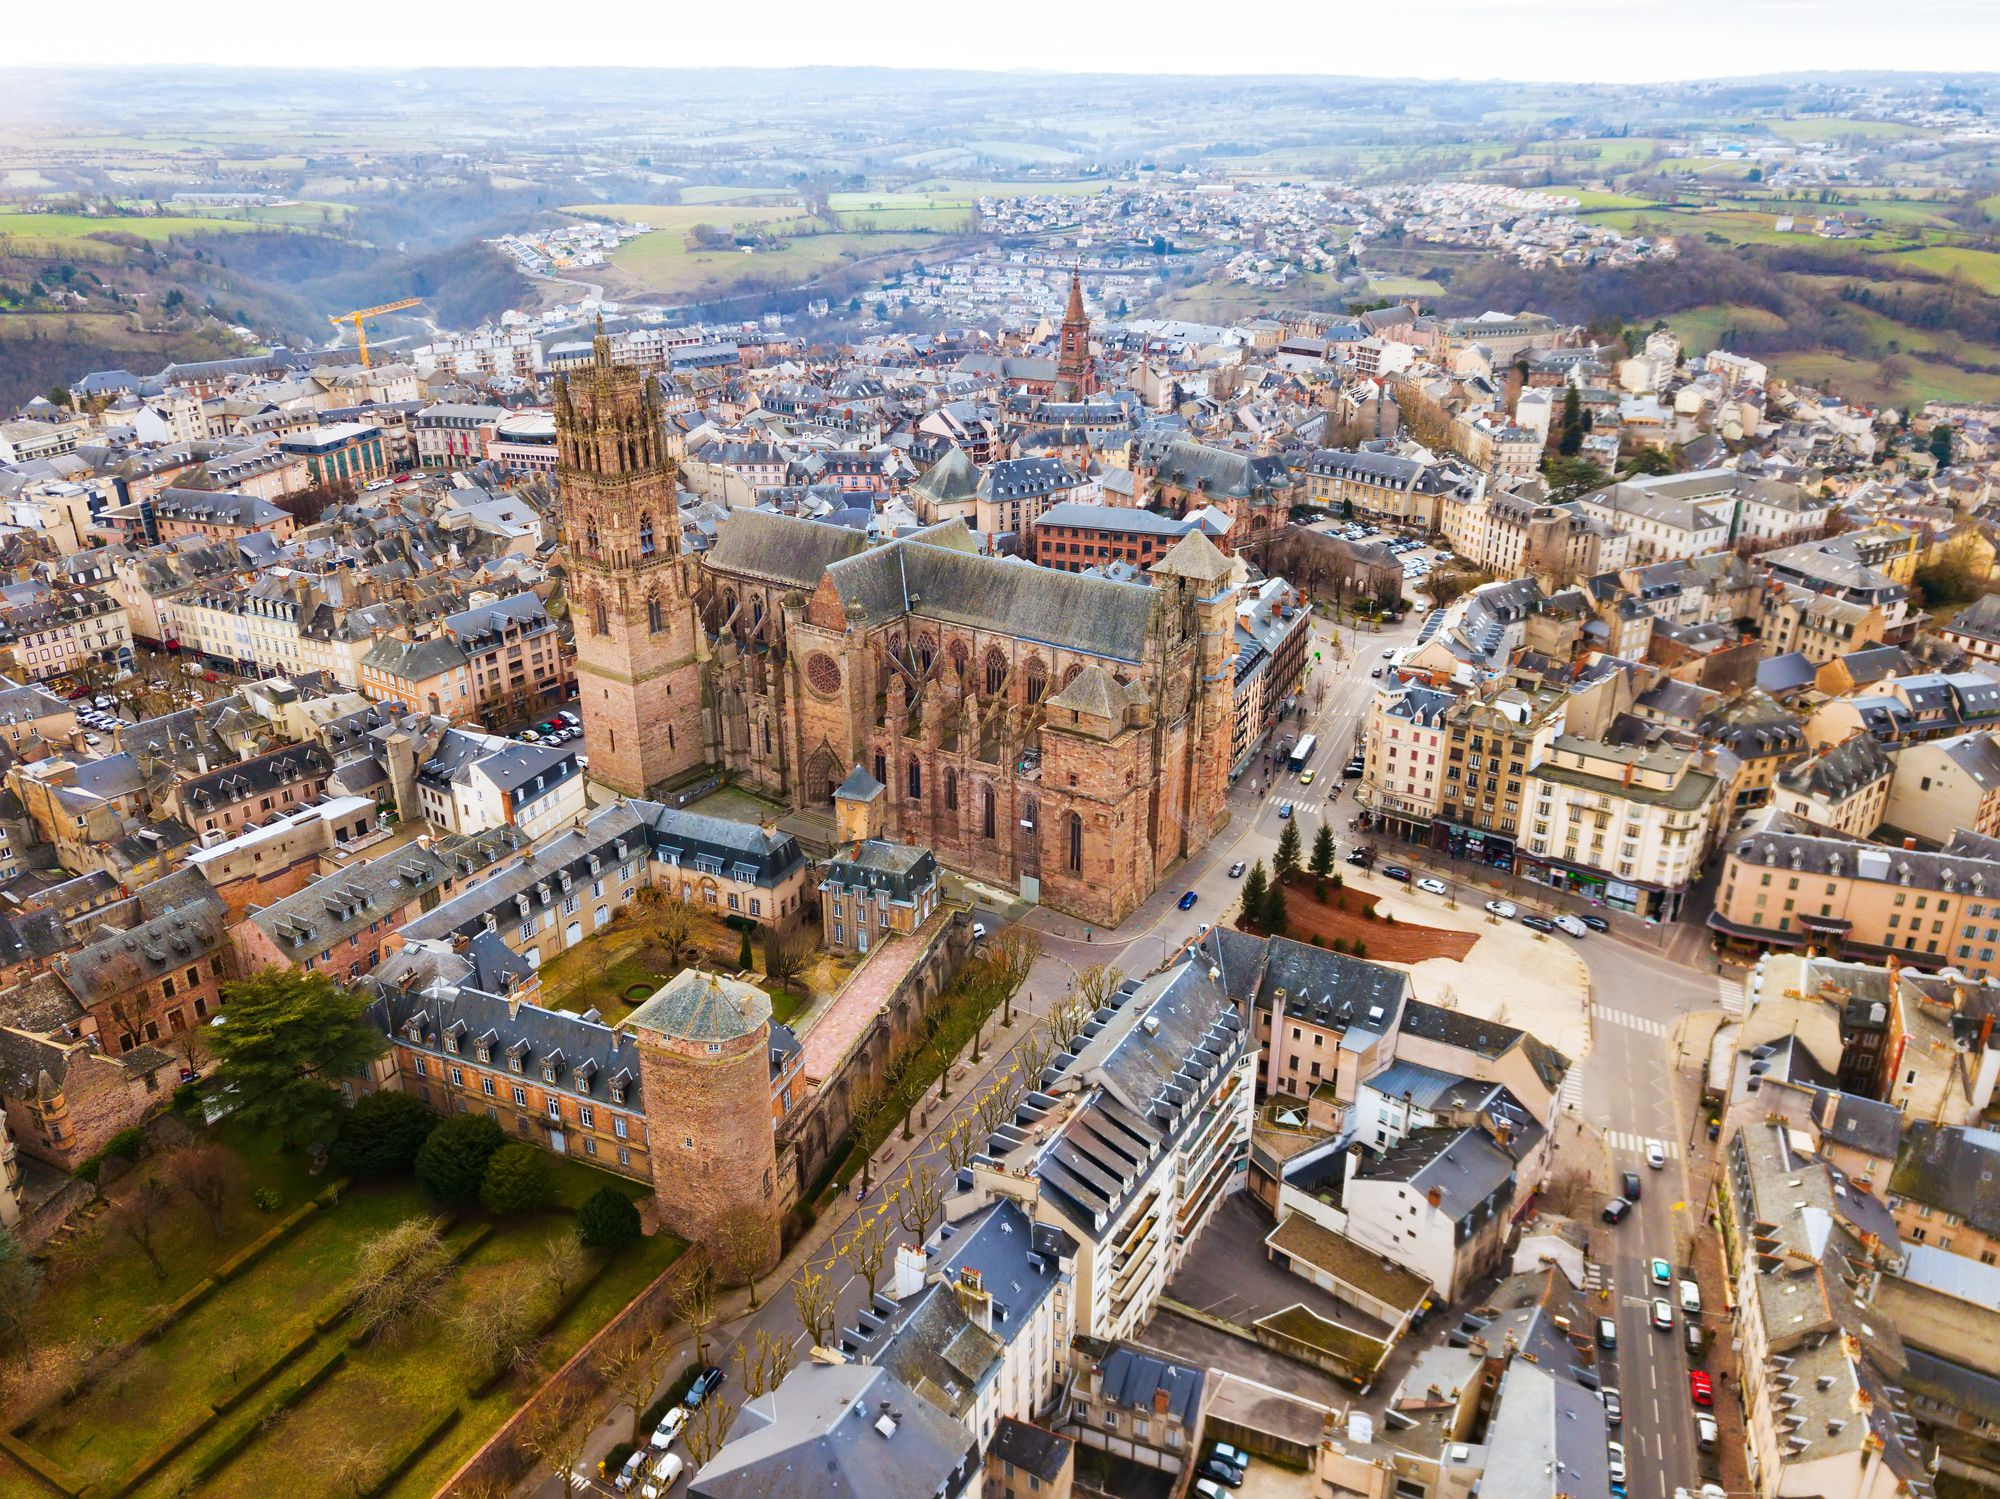 Aerial view of Rodez